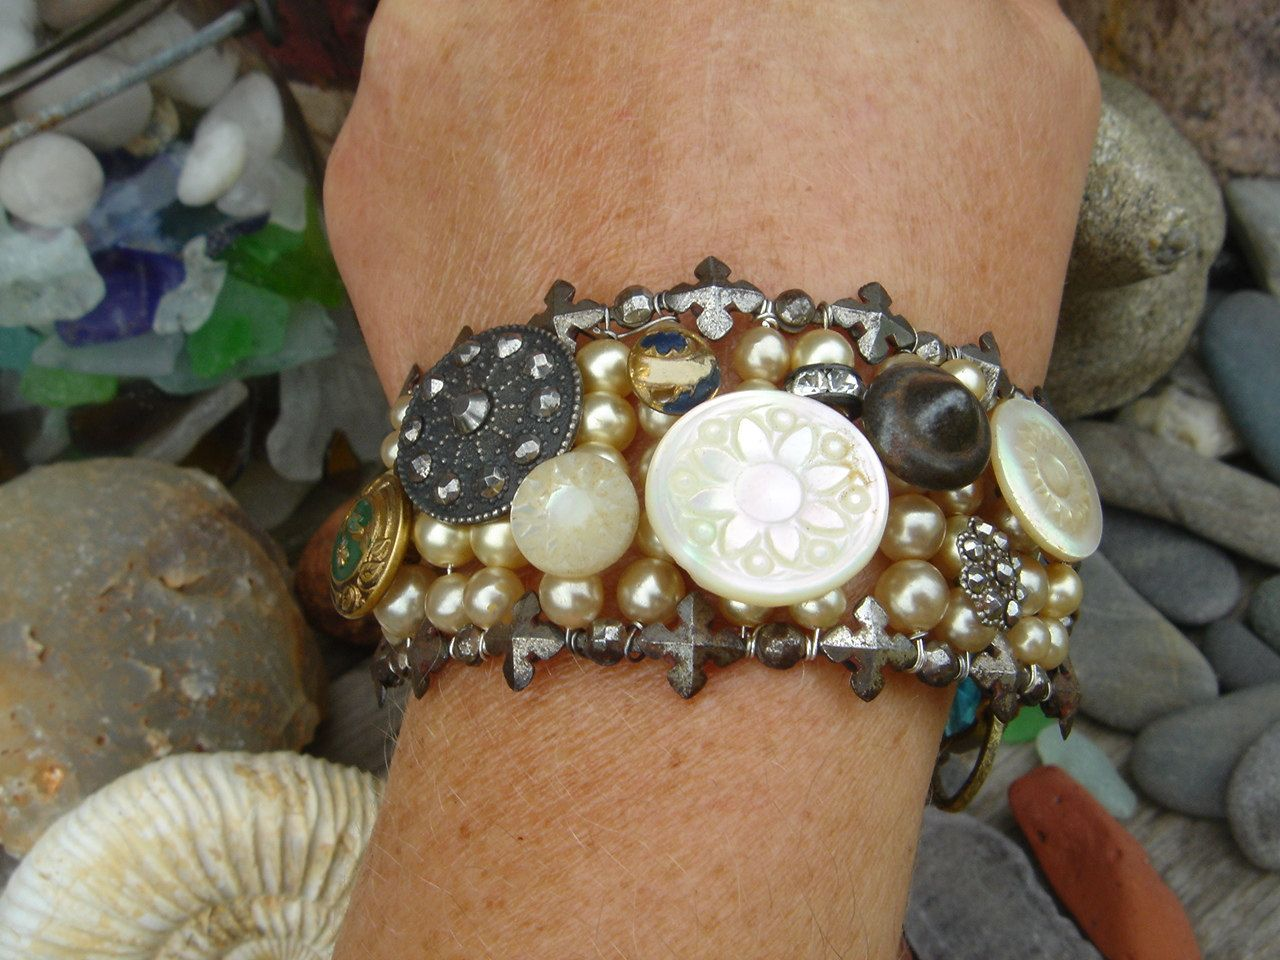 // Gypsy Soul Antique Button Cut Steel Pave Assemblage Bracelet,Handmade,One of a kind. $225.00, via Etsy.